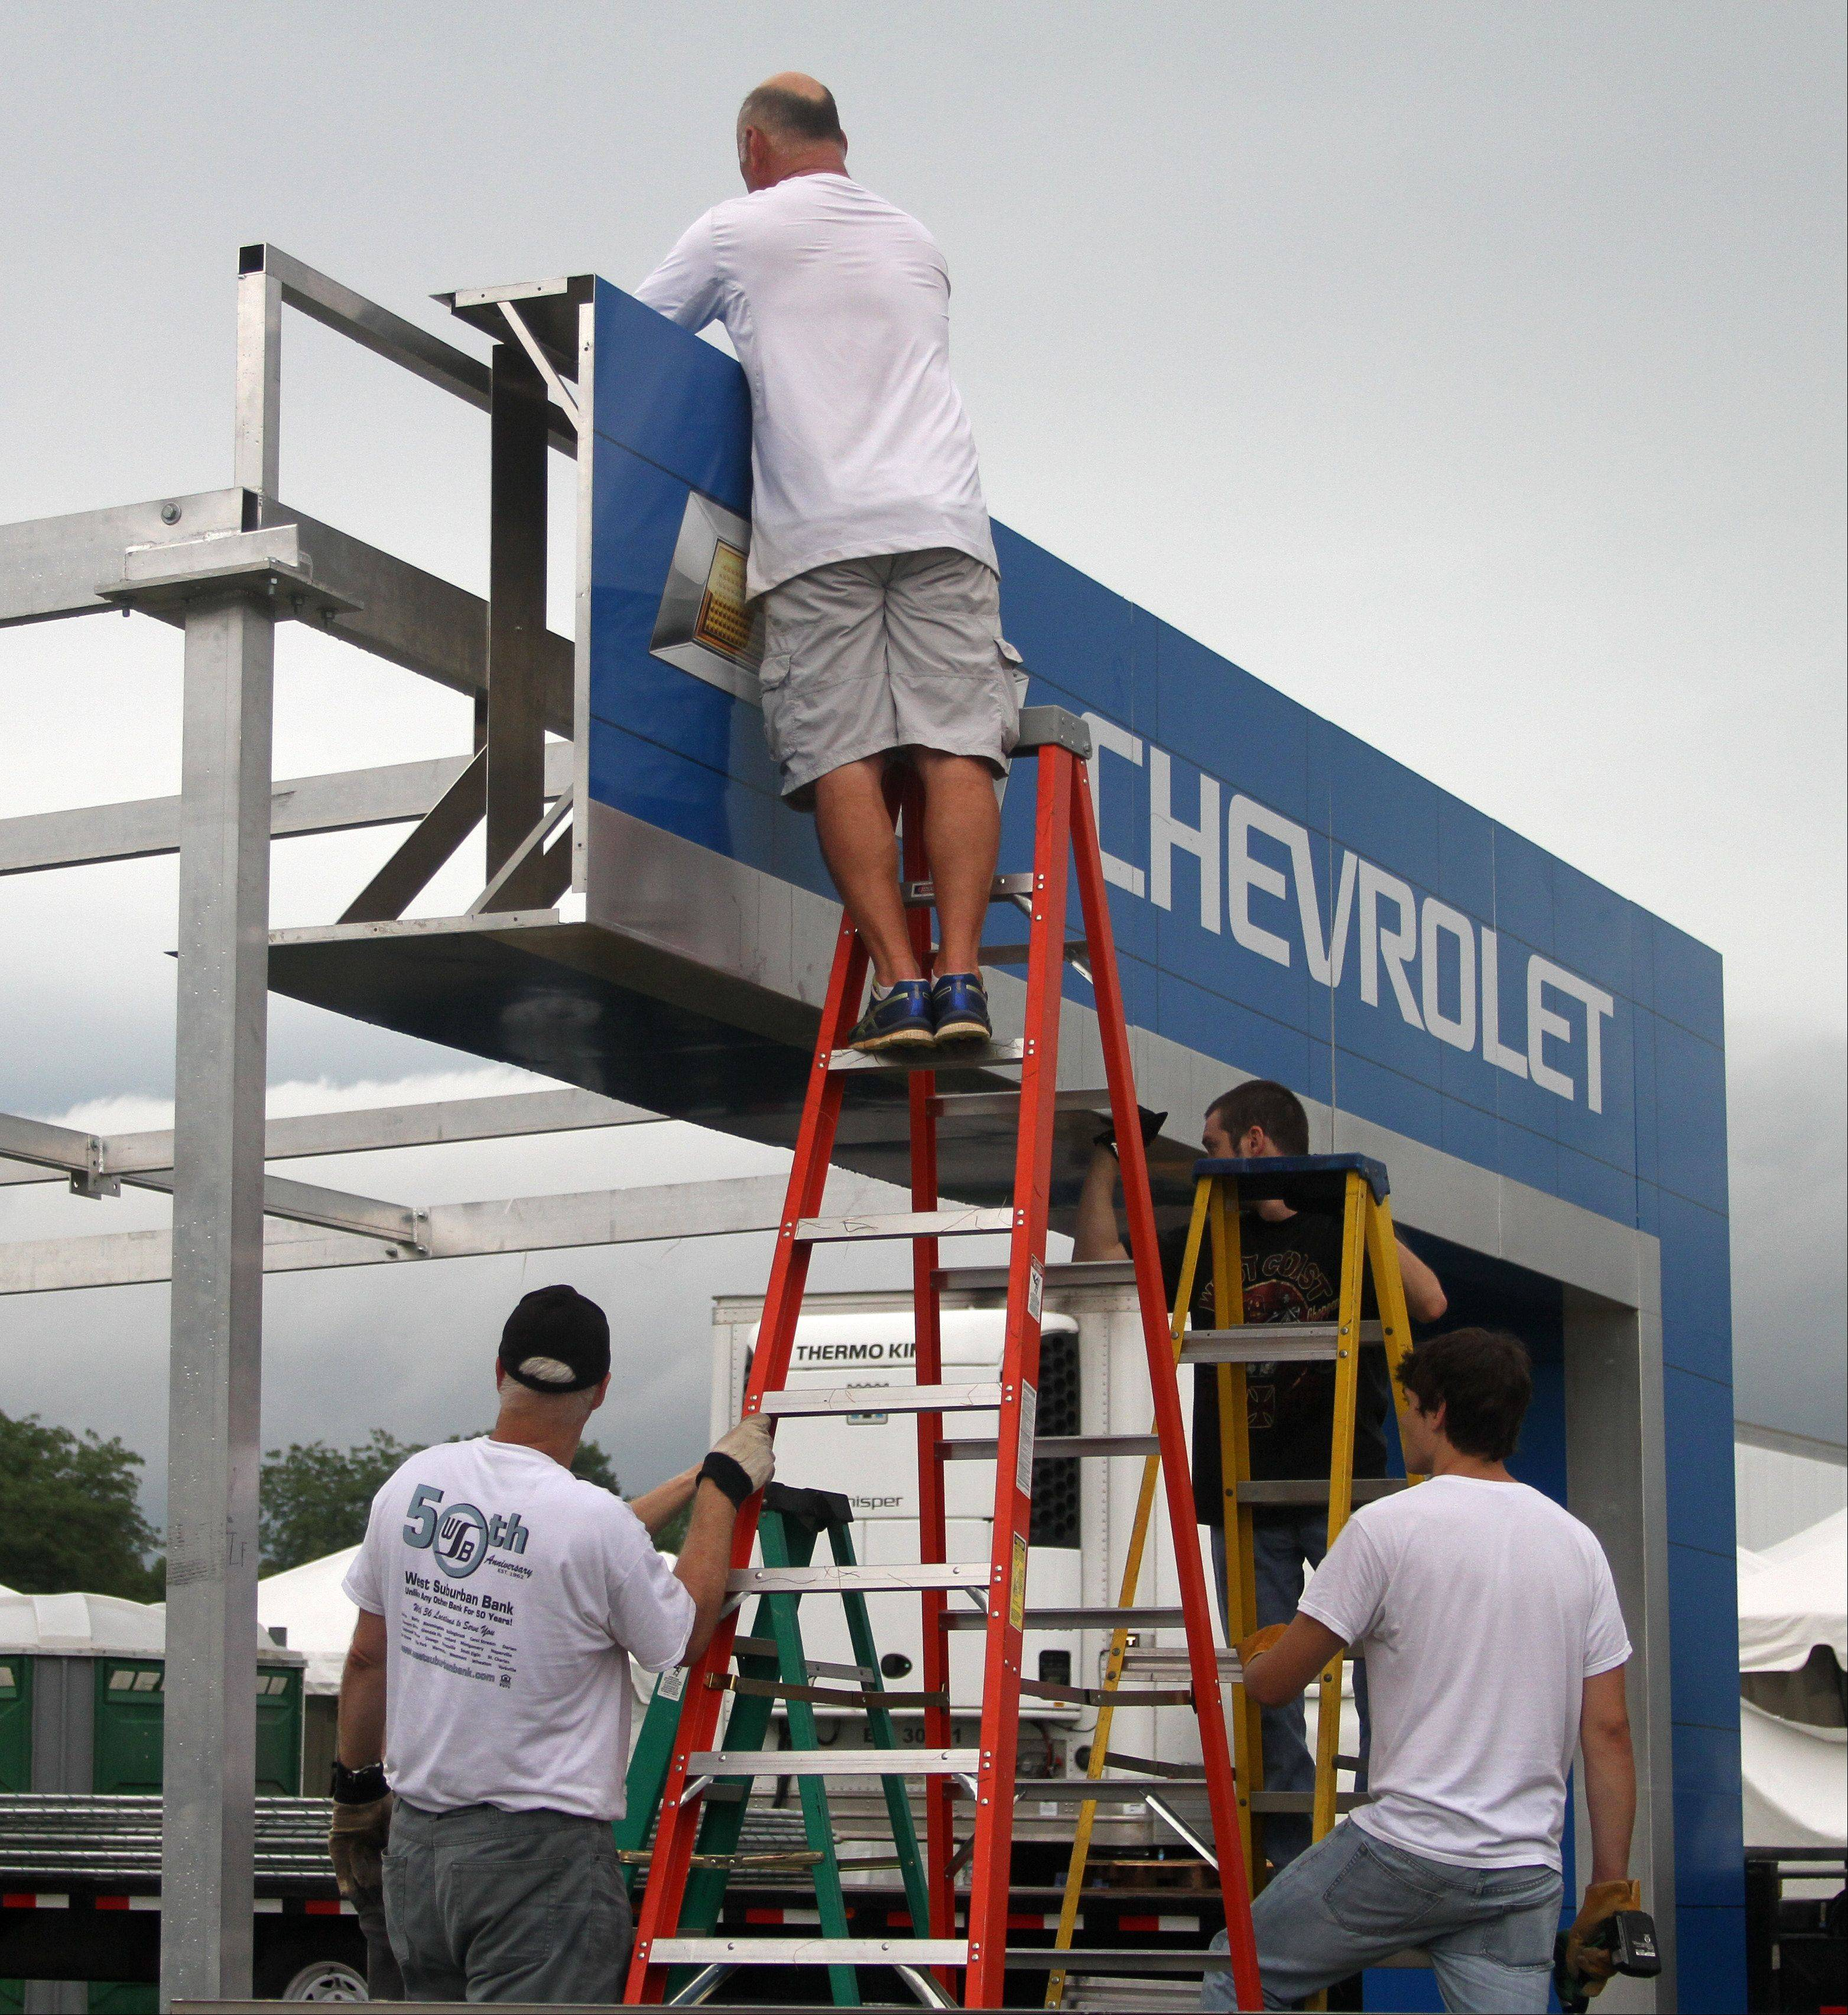 Crews take apart the Chevrolet vendor booth on Naperville Ribfest grounds at Knoch Park as cleanup efforts began Monday. The 26th annual festival run by the Naperville Exchange Club concluded Sunday with a performance by Lynyrd Skynyrd.